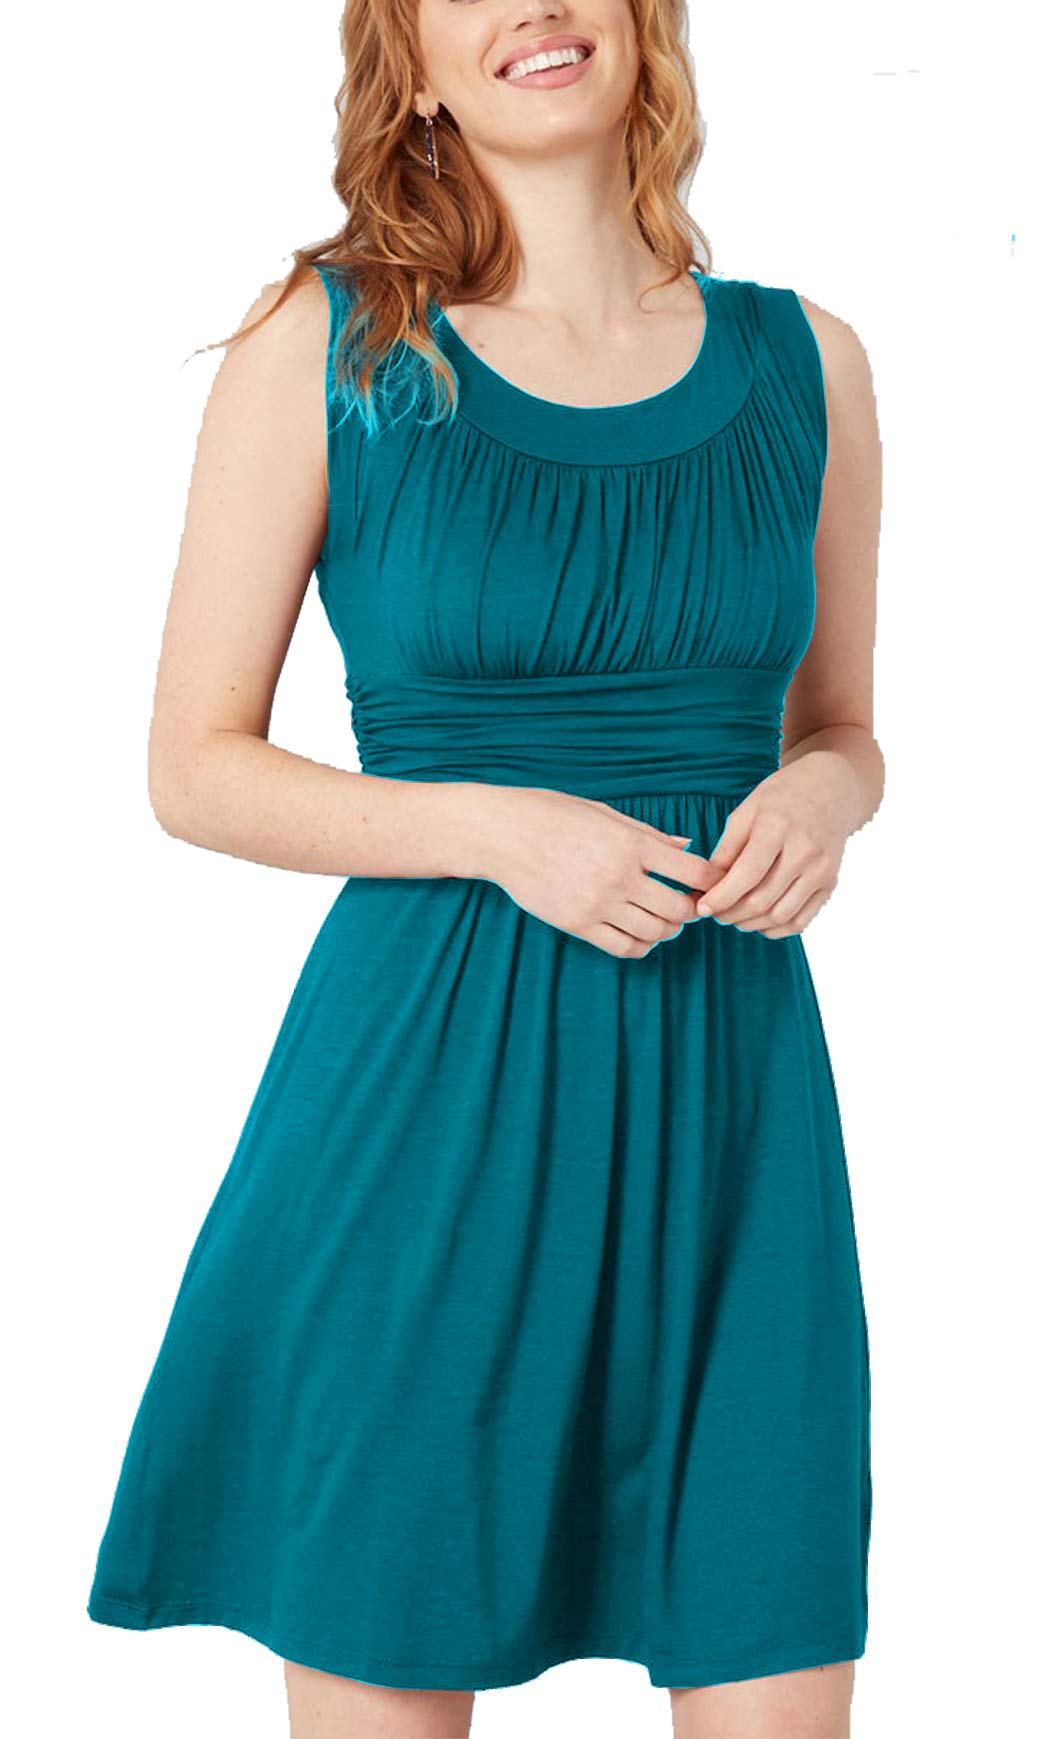 iGENJUN Women's Stretchy Sleeveless A-Line Dresses Swing Flared Cocktail Party Dress